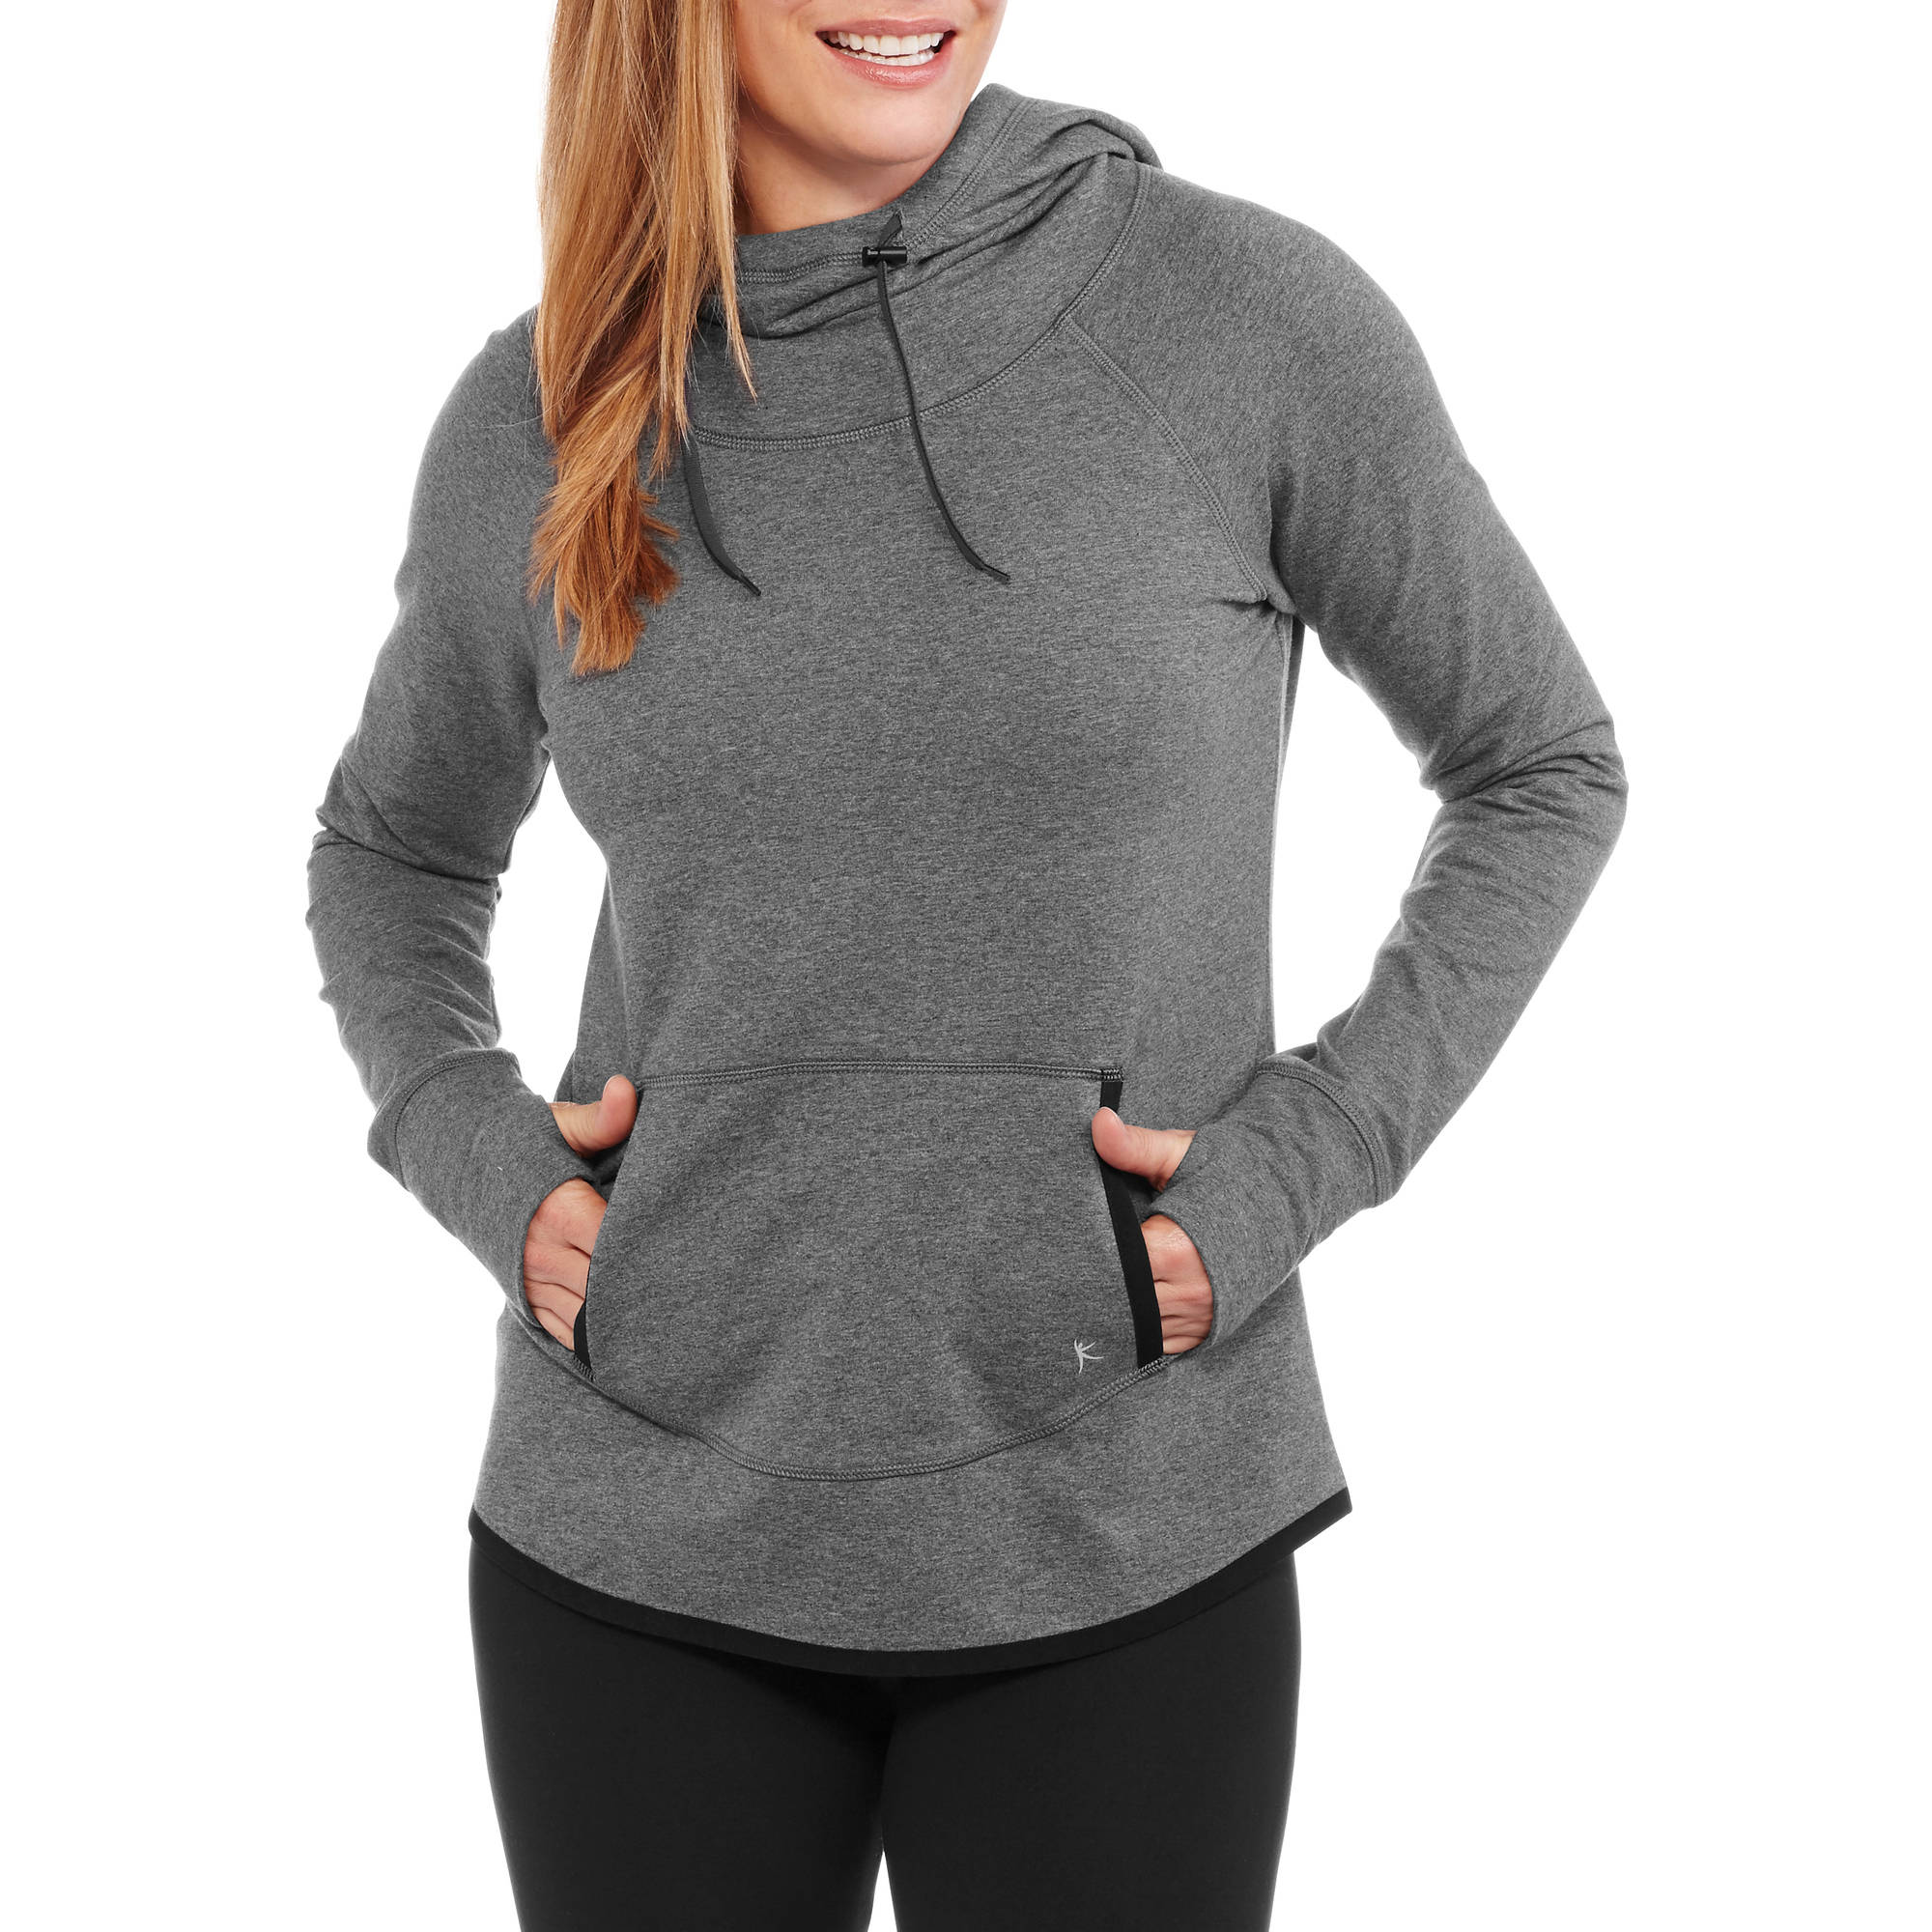 Find great deals on eBay for womens thumb hole sweatshirts. Shop with confidence.